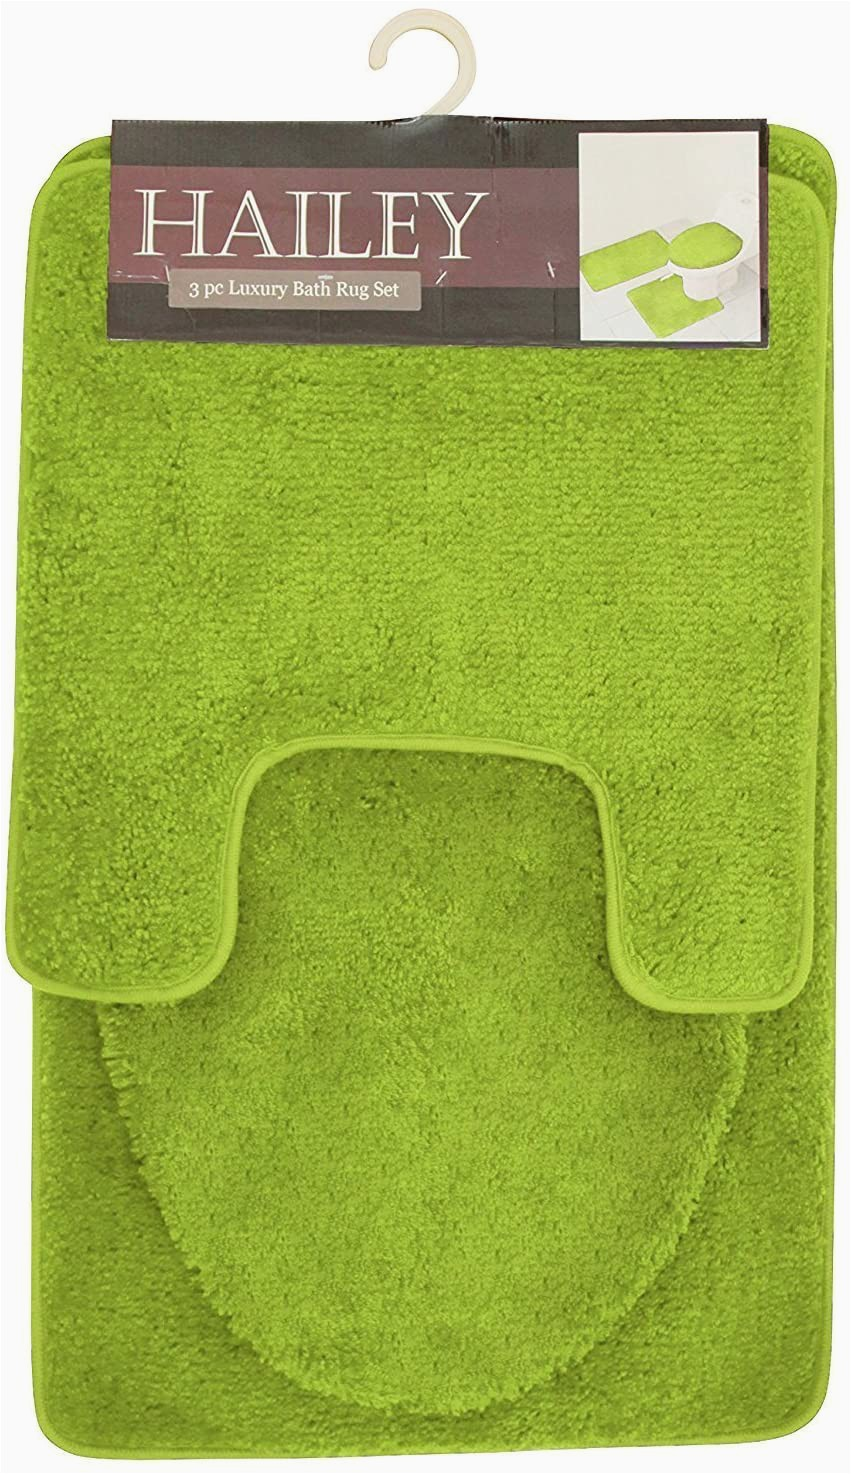 Micro Plush Memory Foam Bath Rug Hailey 3 Piece Bath Rug Set Lime